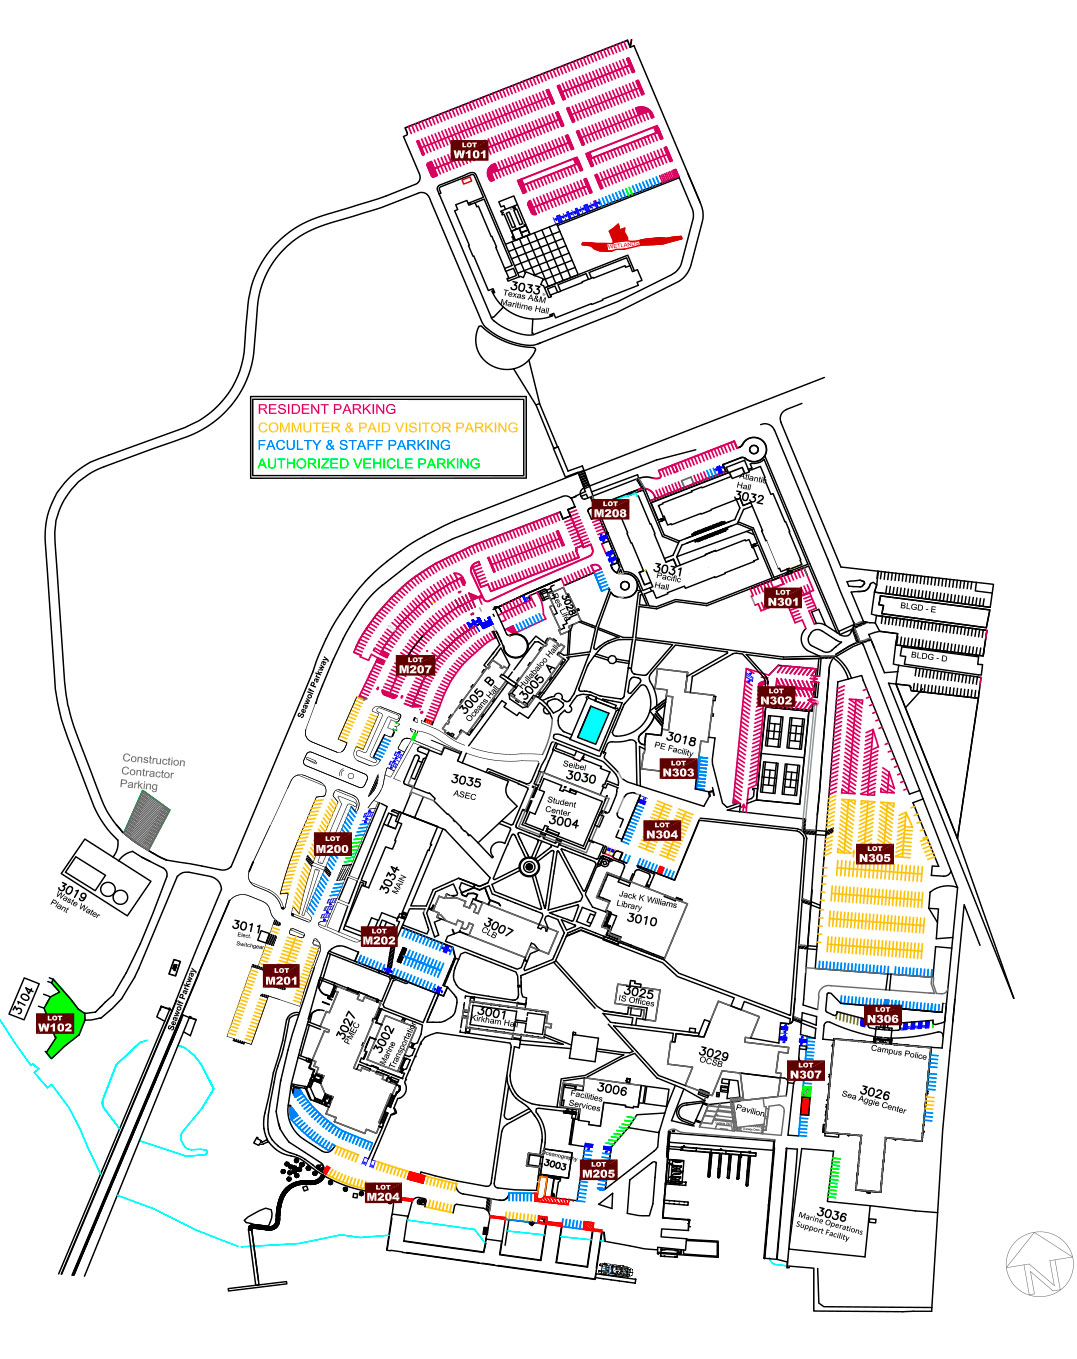 Texas A&M University Galveston Campus Maps and Directions ... on gsu campus map, skagit college campus map, arizona western college campus map, cisco college campus map, art institute of dallas campus map, unt health science center campus map, knoxville college campus map, baylor college of medicine campus map, manor college campus map, vernon college campus map, galveston haunted face, college of southern idaho campus map, south plains college map, georgia perimeter college campus map, alameda college campus map, oneonta college campus map, eastern arizona college campus map, lake michigan college campus map, clarendon college campus map, longview college campus map,